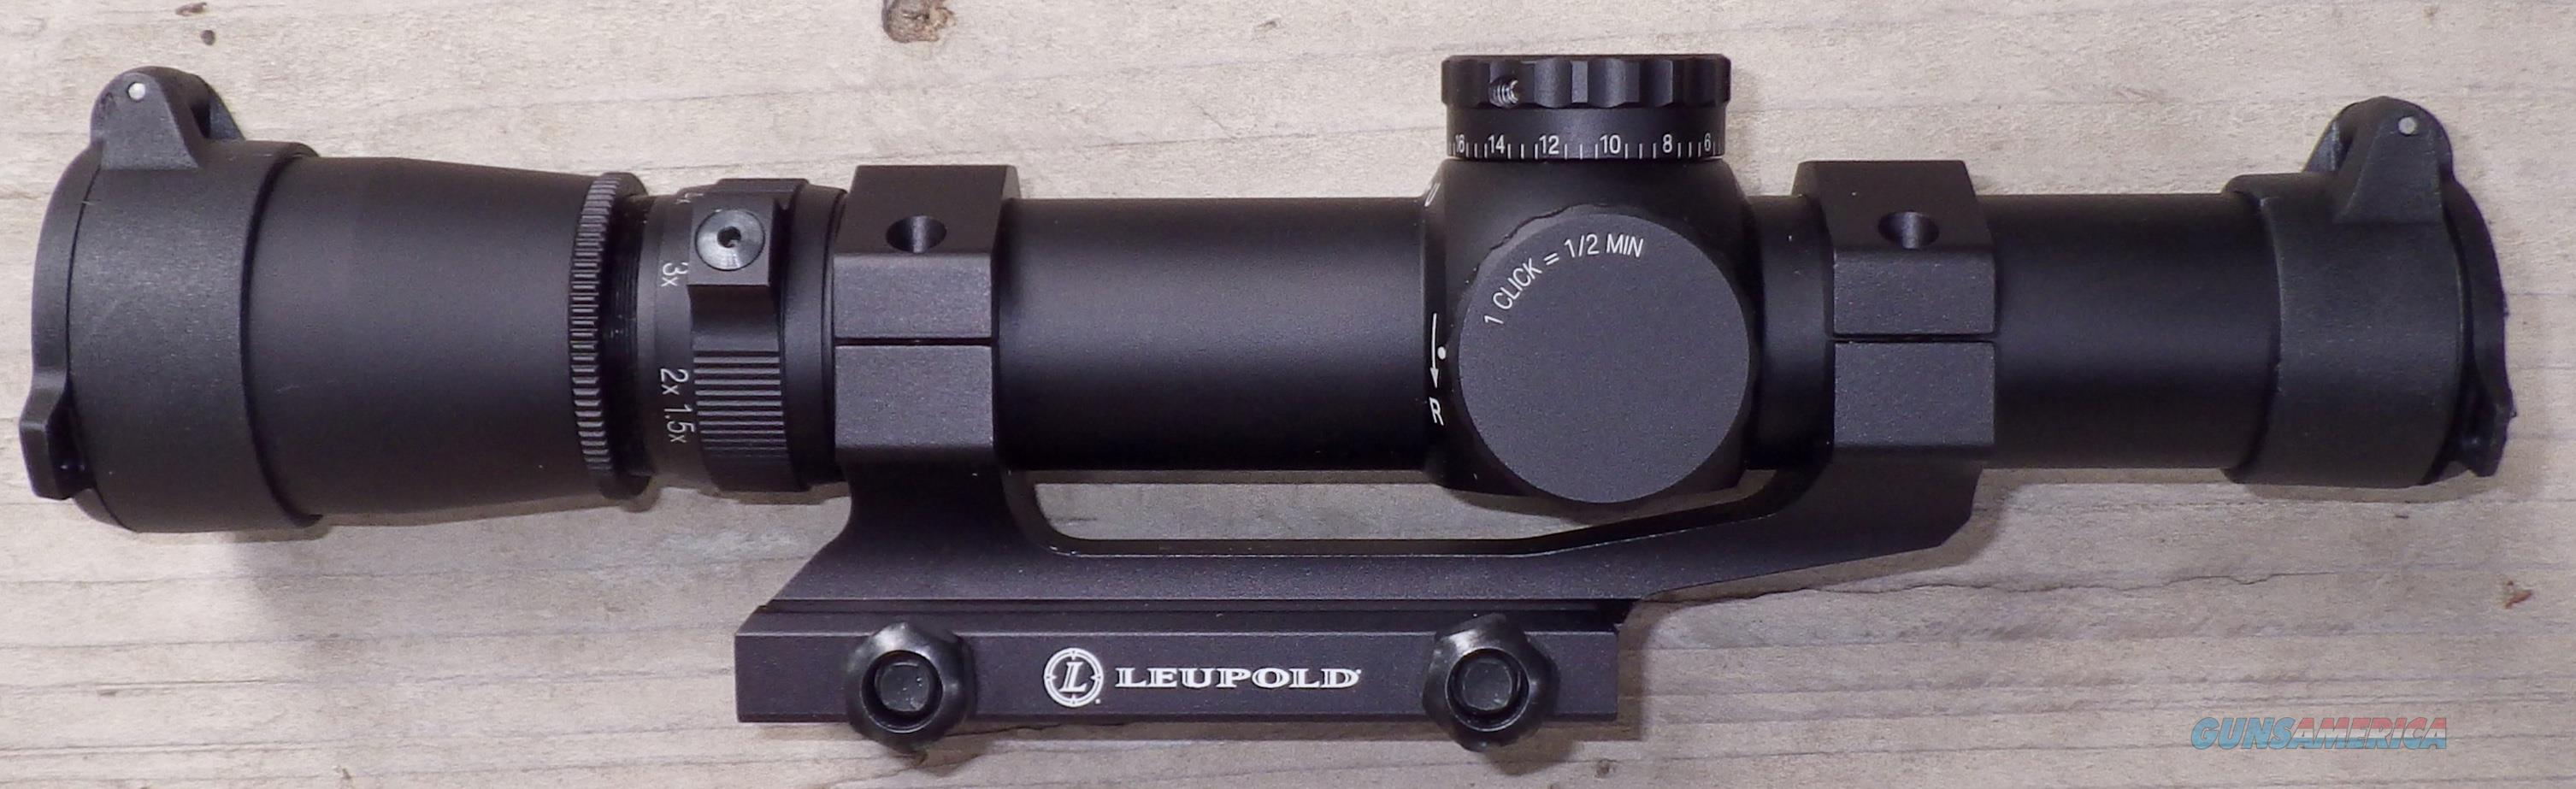 Leupold Mark 4 MR/T 1.5-5x20mm M2-FF illuminated .300 Blackout with mount  Non-Guns > Scopes/Mounts/Rings & Optics > Rifle Scopes > Variable Focal Length